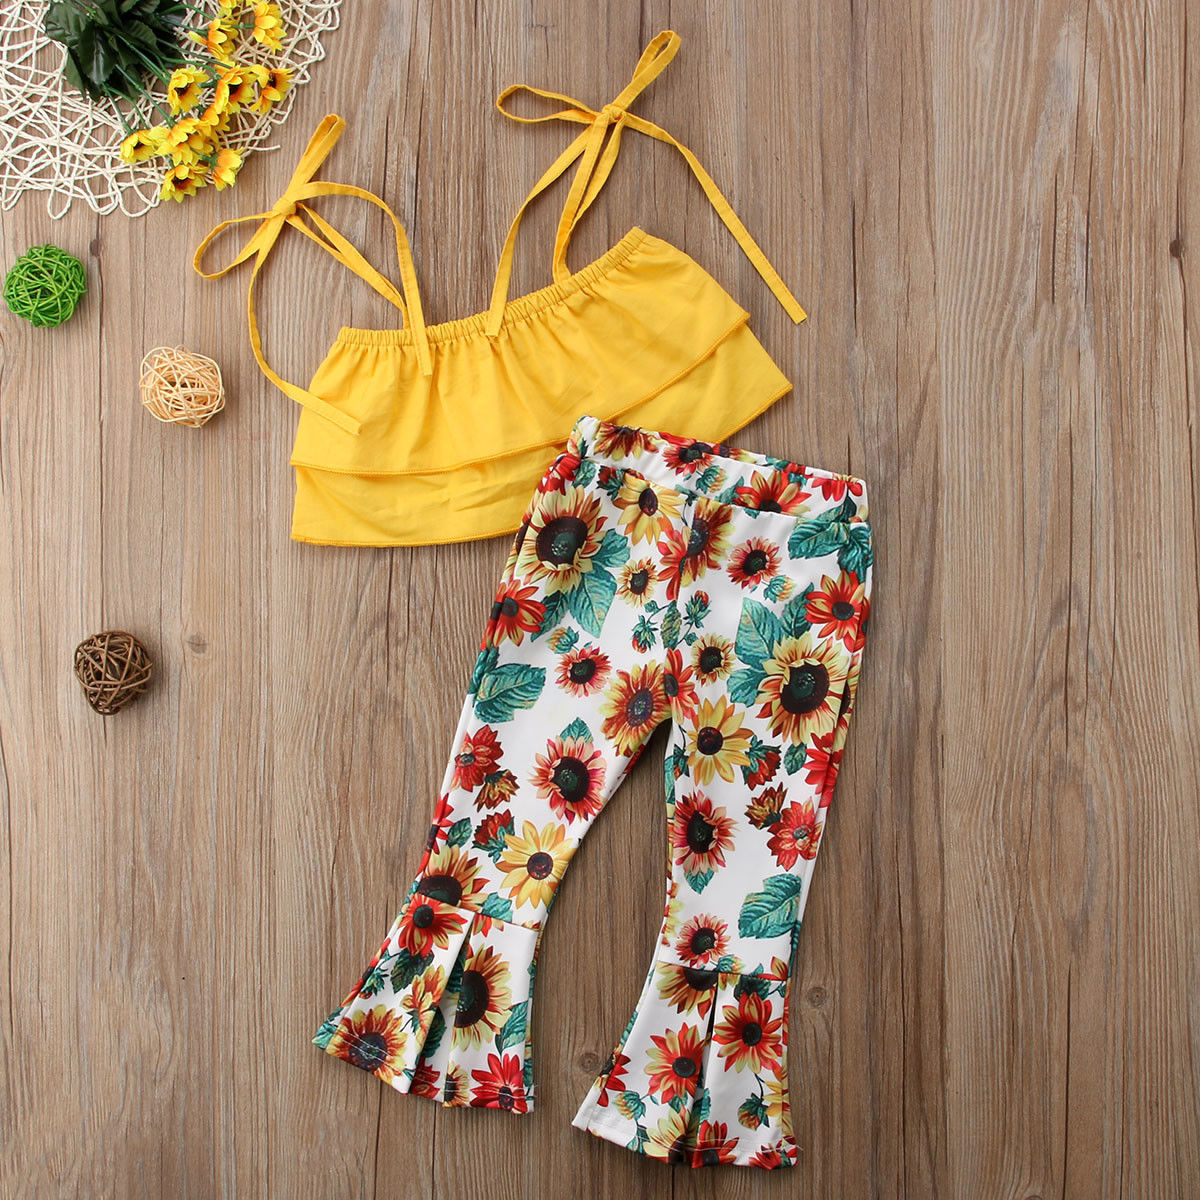 6117a61898e7a Summer Toddler Kids Baby Girl Sleeveless Layered Yellow Tank Tops+Sunflower Flared  Pant Bell bottom 2PCS Outfits Clothing Set-in Clothing Sets from Mother ...